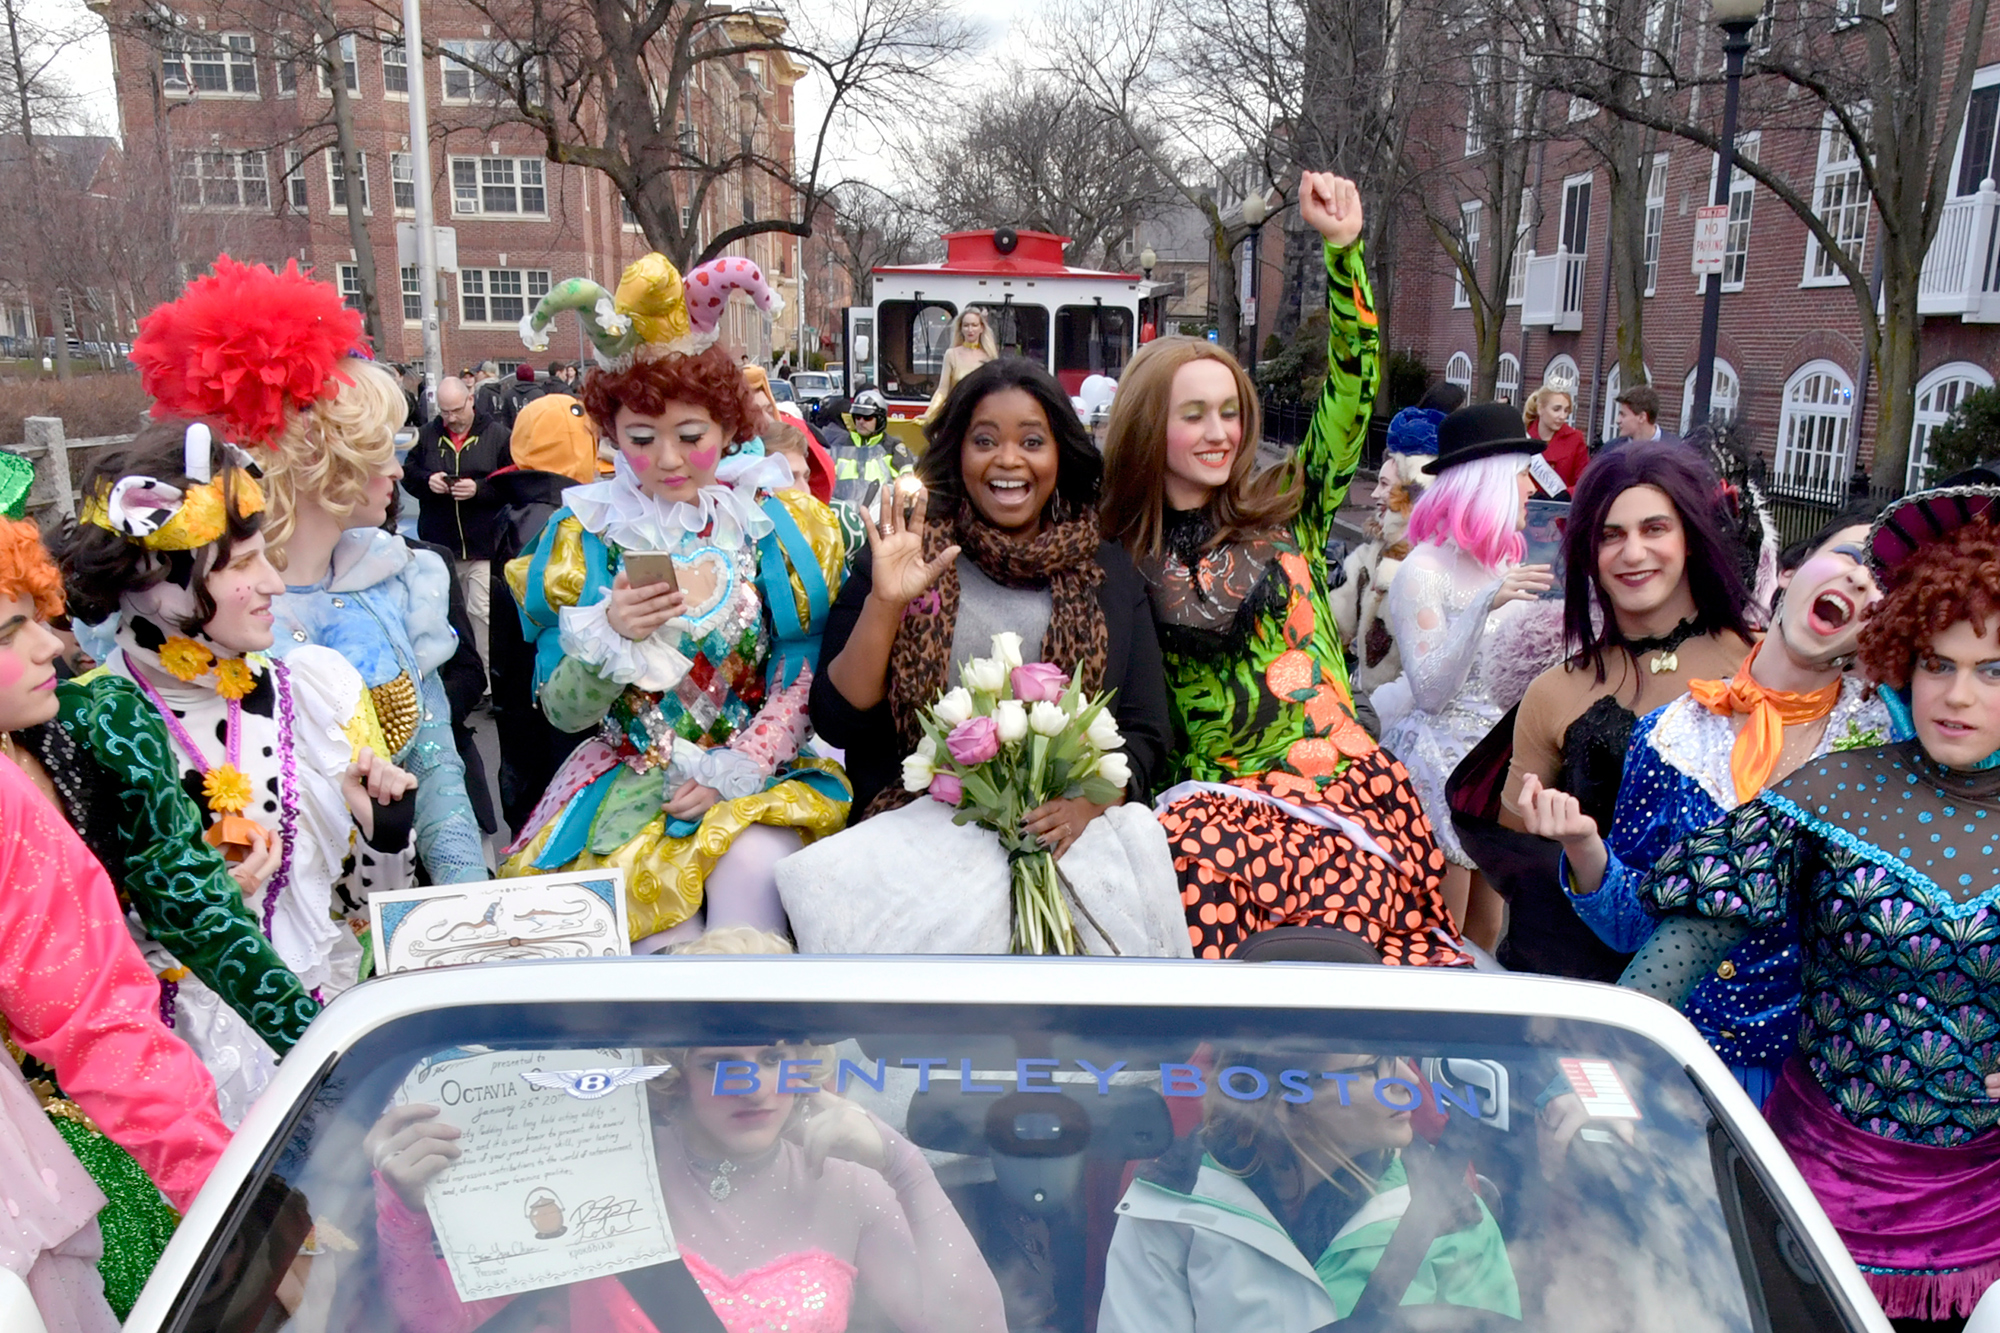 Octavia Spencer Receives Hasty Pudding Award from Harvard